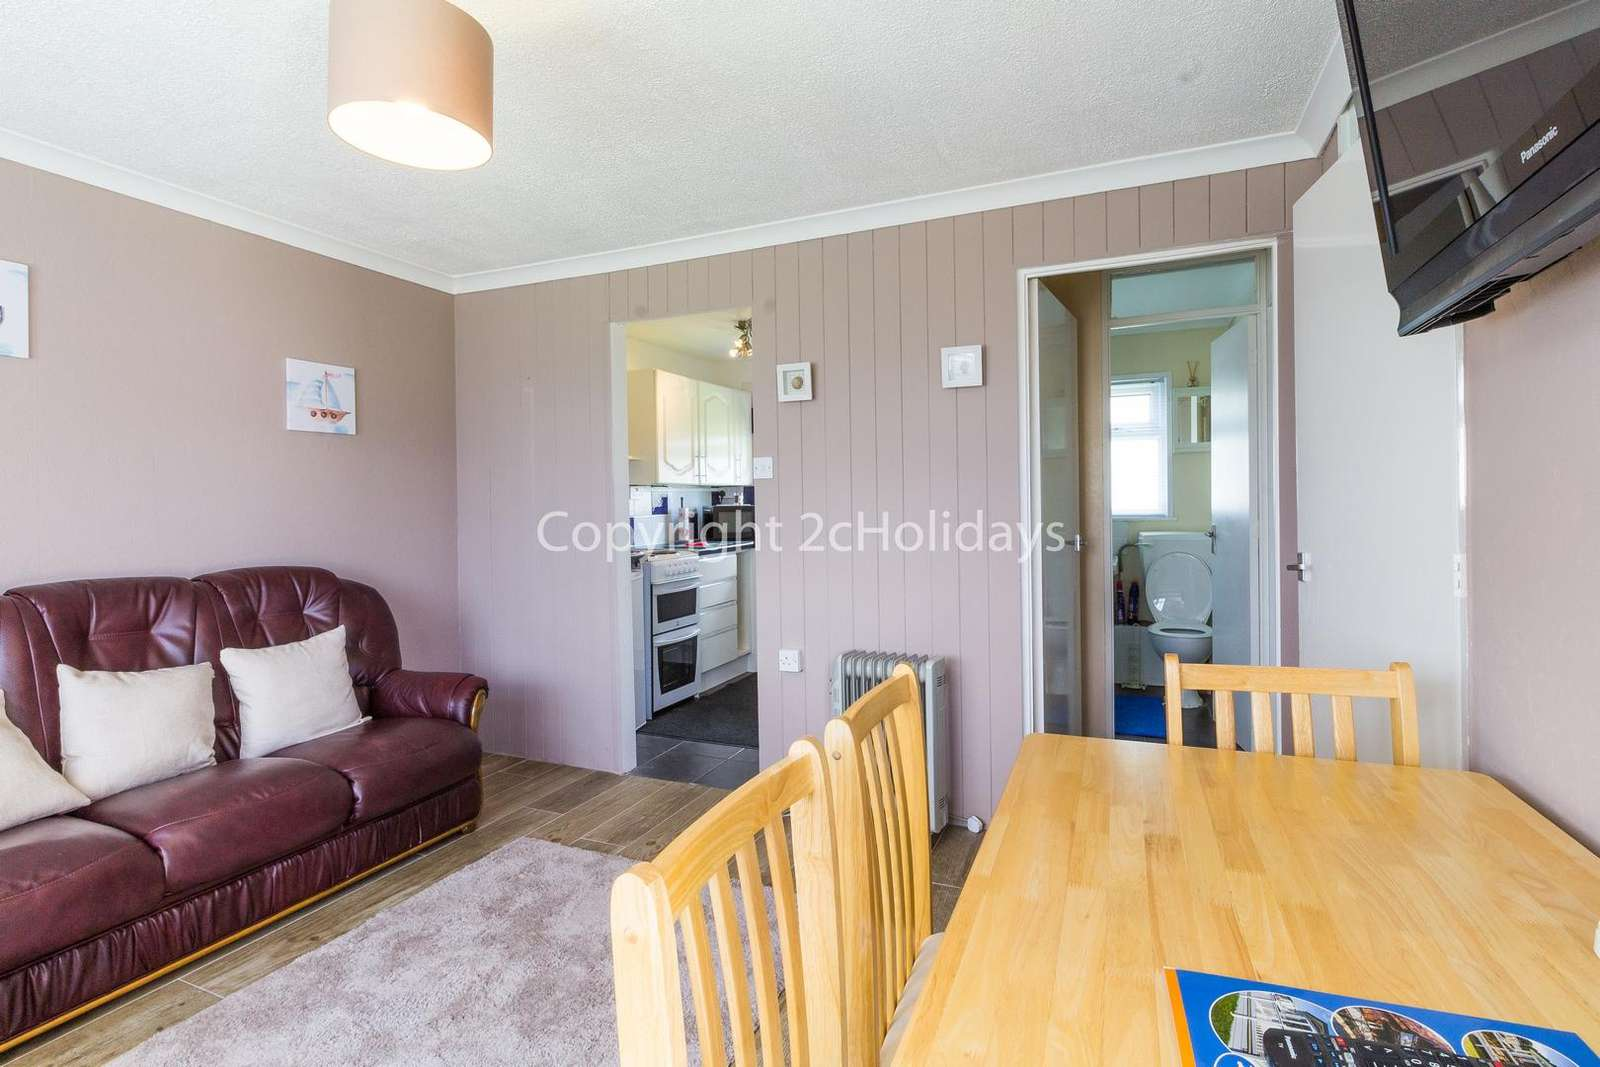 Ideal place to dine with your family or friends in this self-catering accommodation